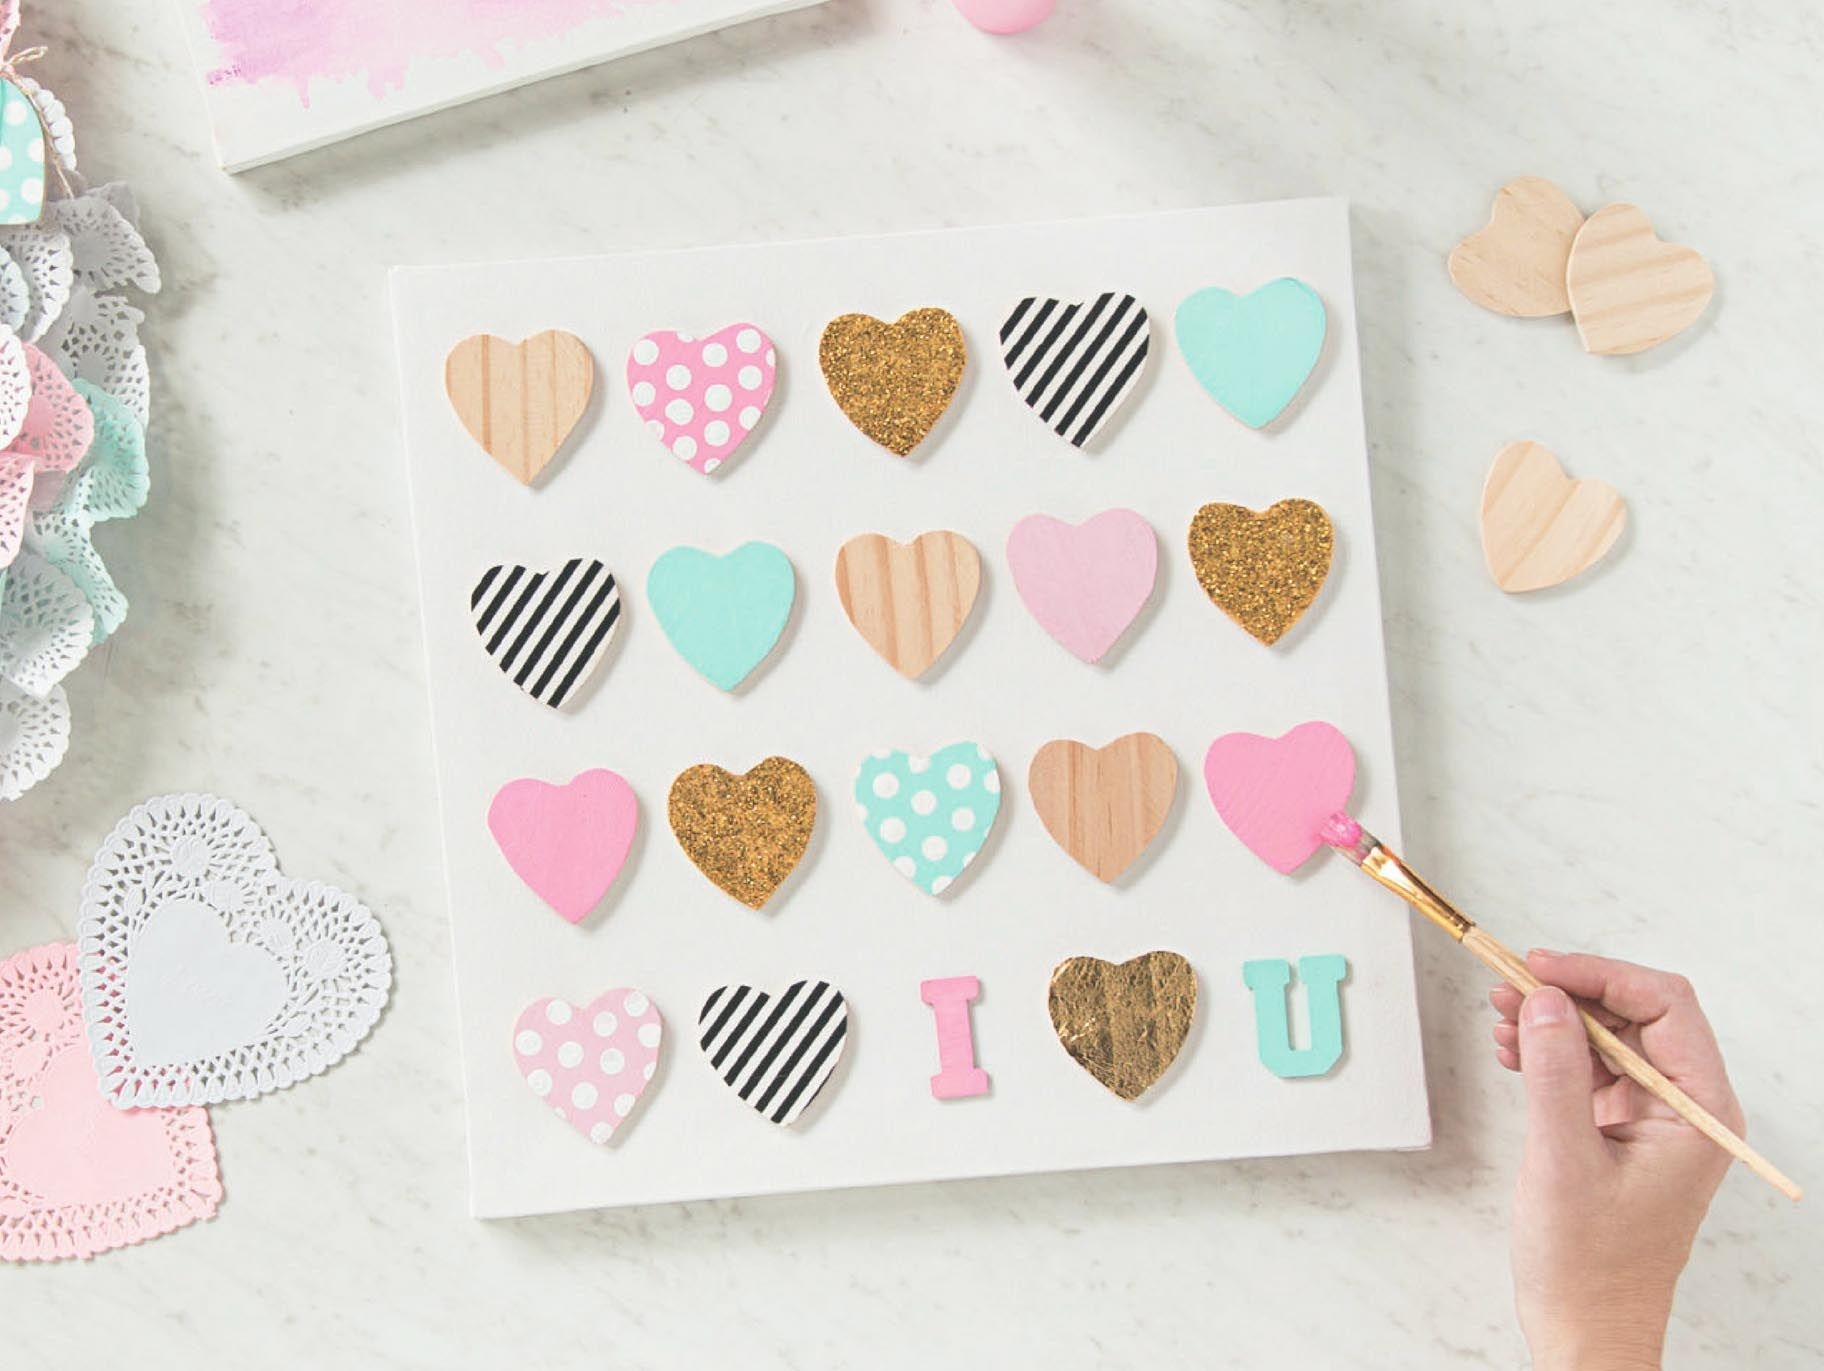 Diy Mini Wooden Heart Canvas Wooden Hearts Crafts Wood Heart Crafts Crafts